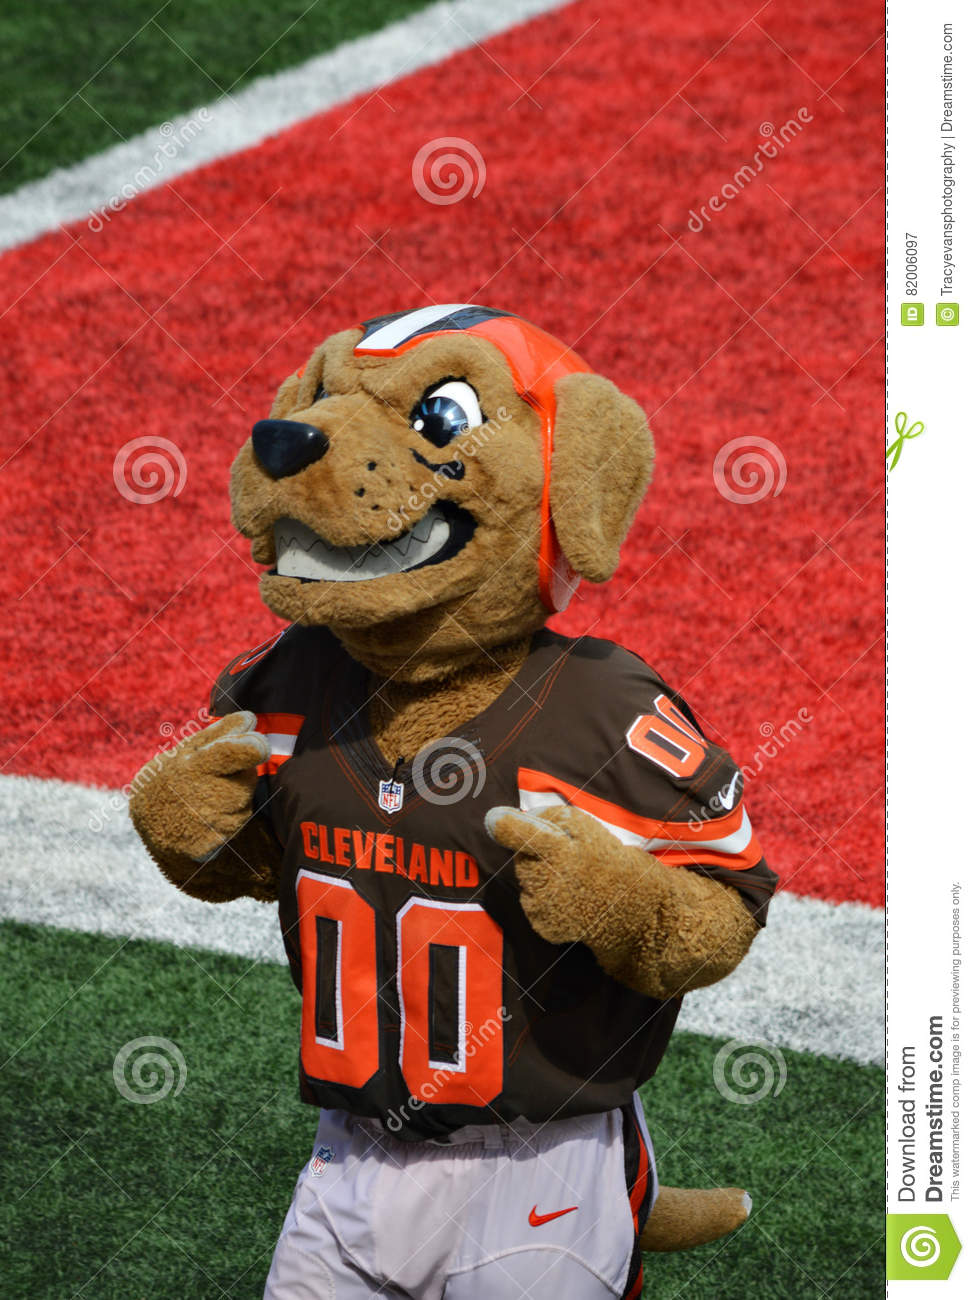 chomps cleveland ohio nfl mascot the cleveland browns